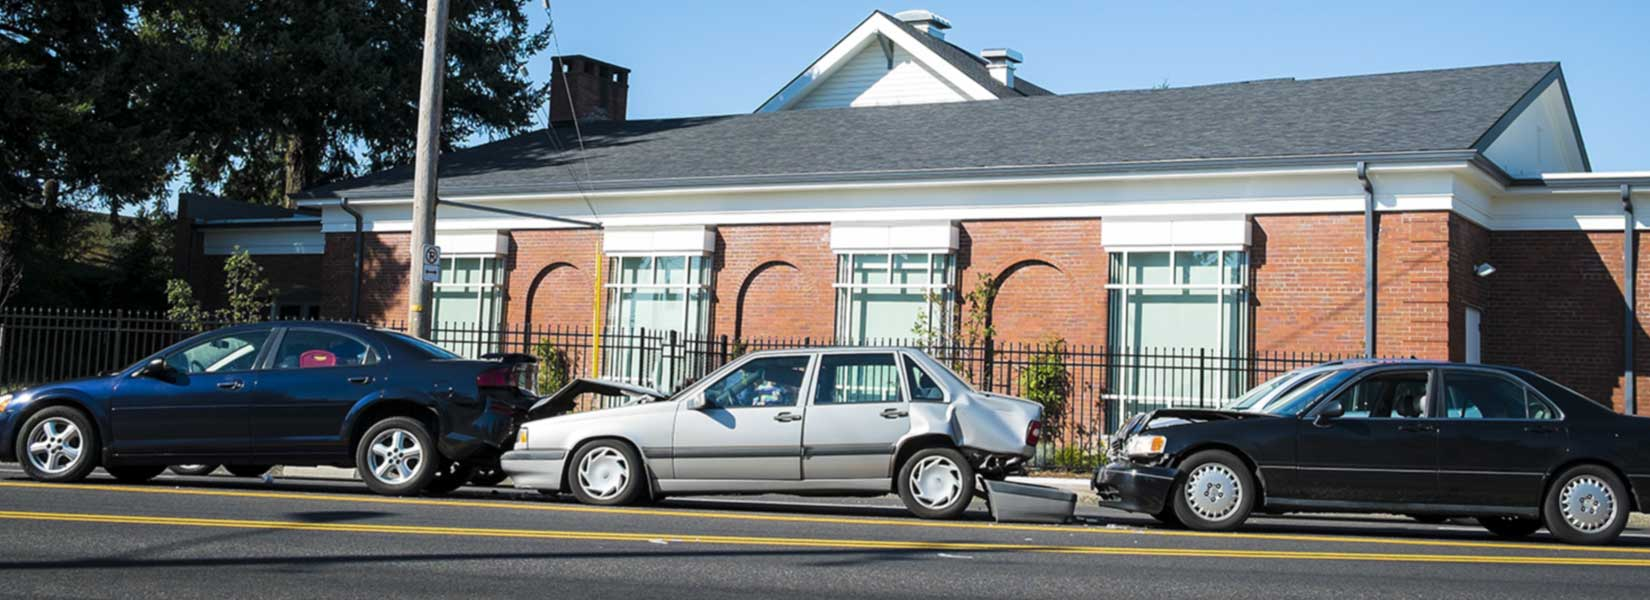 Avondale Car Accident Lawyer Q&A: How Do You Determine Fault in a Multi-Car Accident?